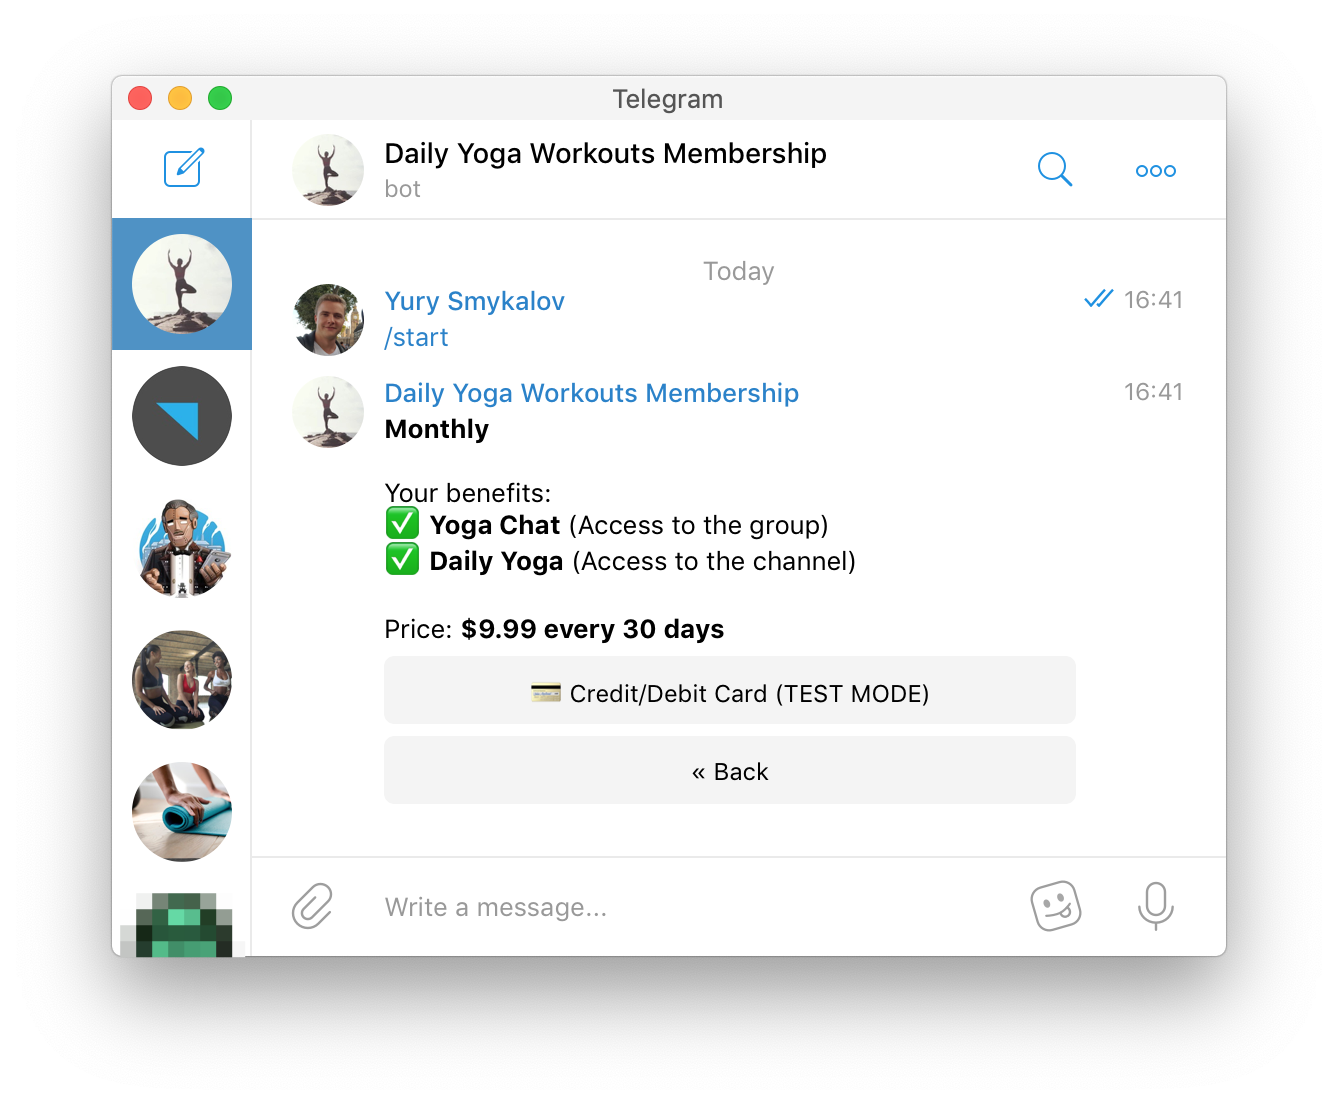 Telegram bot add member to channel. robot telegram download all channel files site stackoverflow.com.